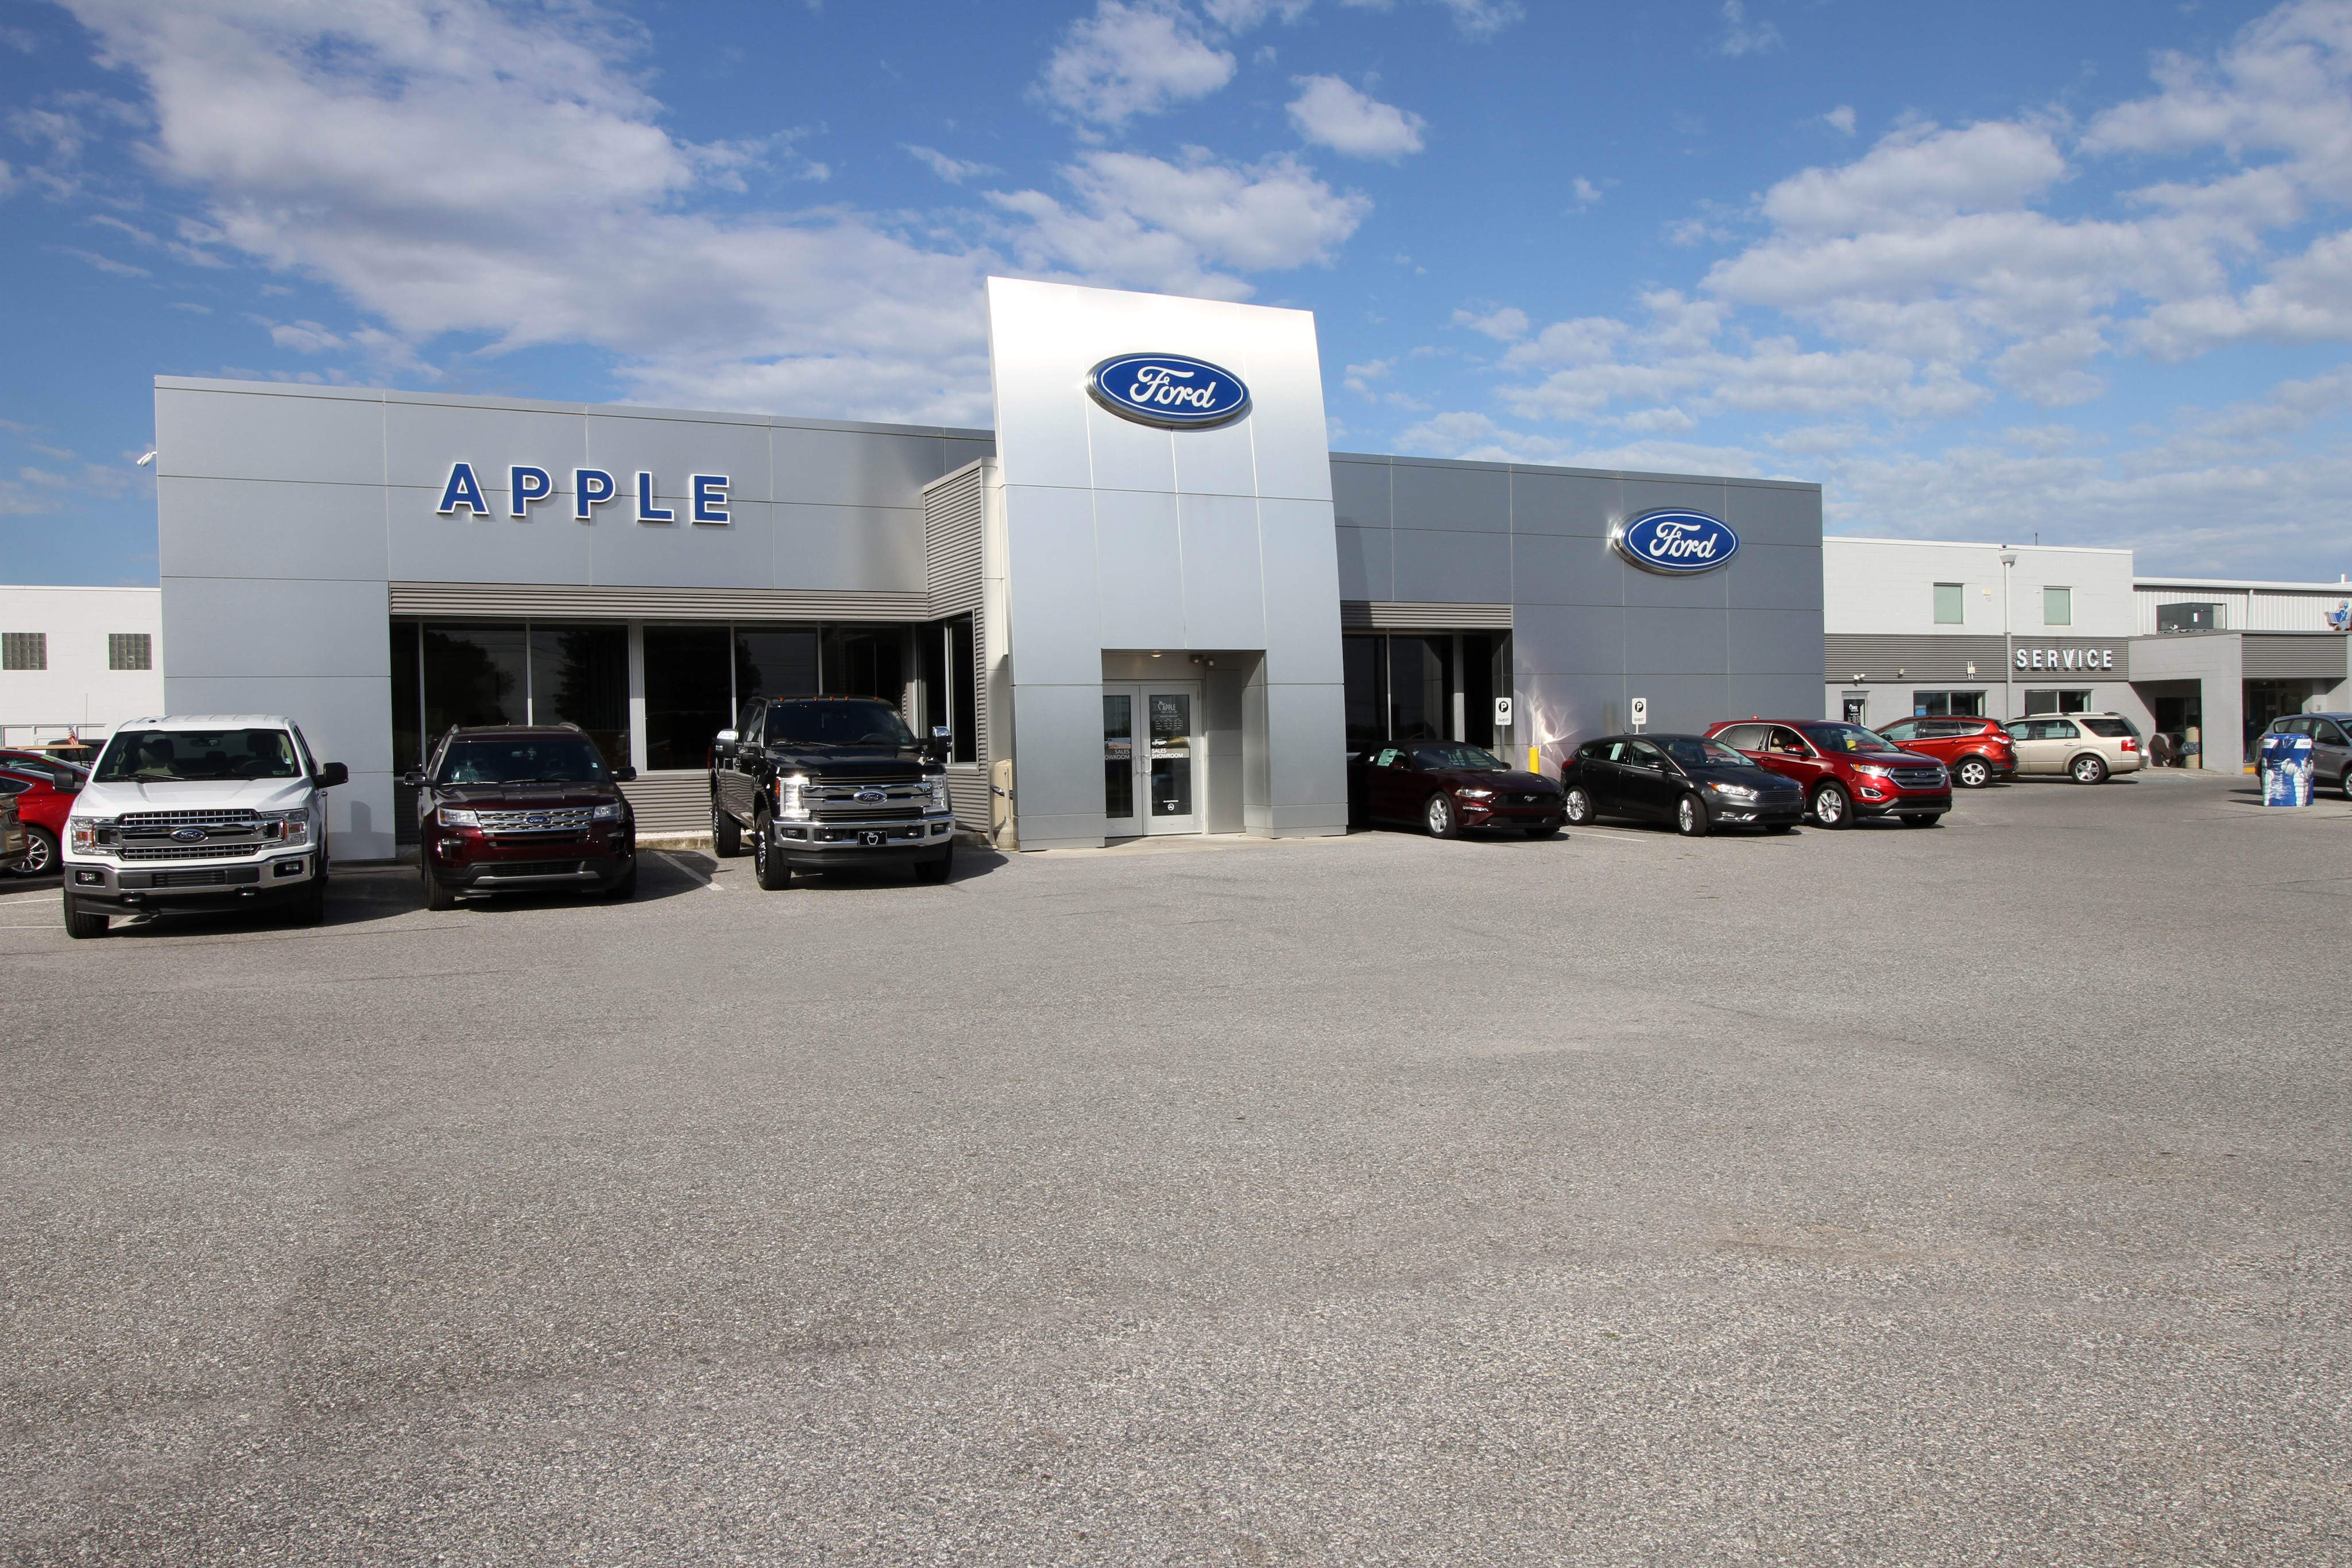 Used Car Dealerships Windsor >> Know About Company & Ford Dealership - Apple Ford of Red Lion